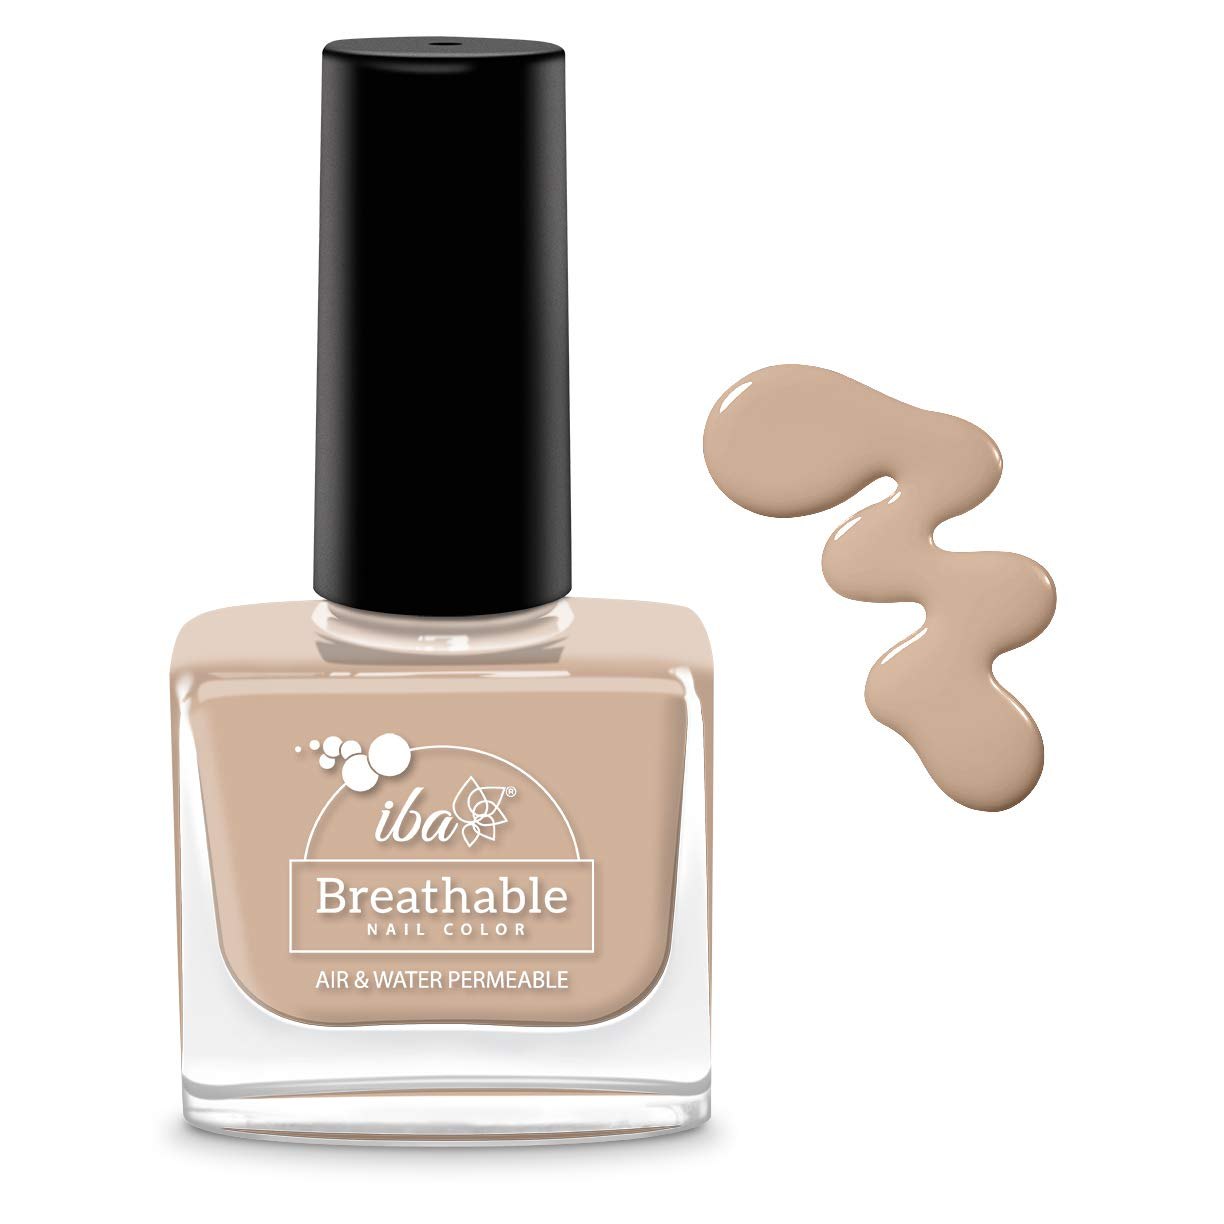 Buy Iba Halal Care Breathable Nail Color B01 Toasted Almond 9ml Online At Low Prices In India Amazon In